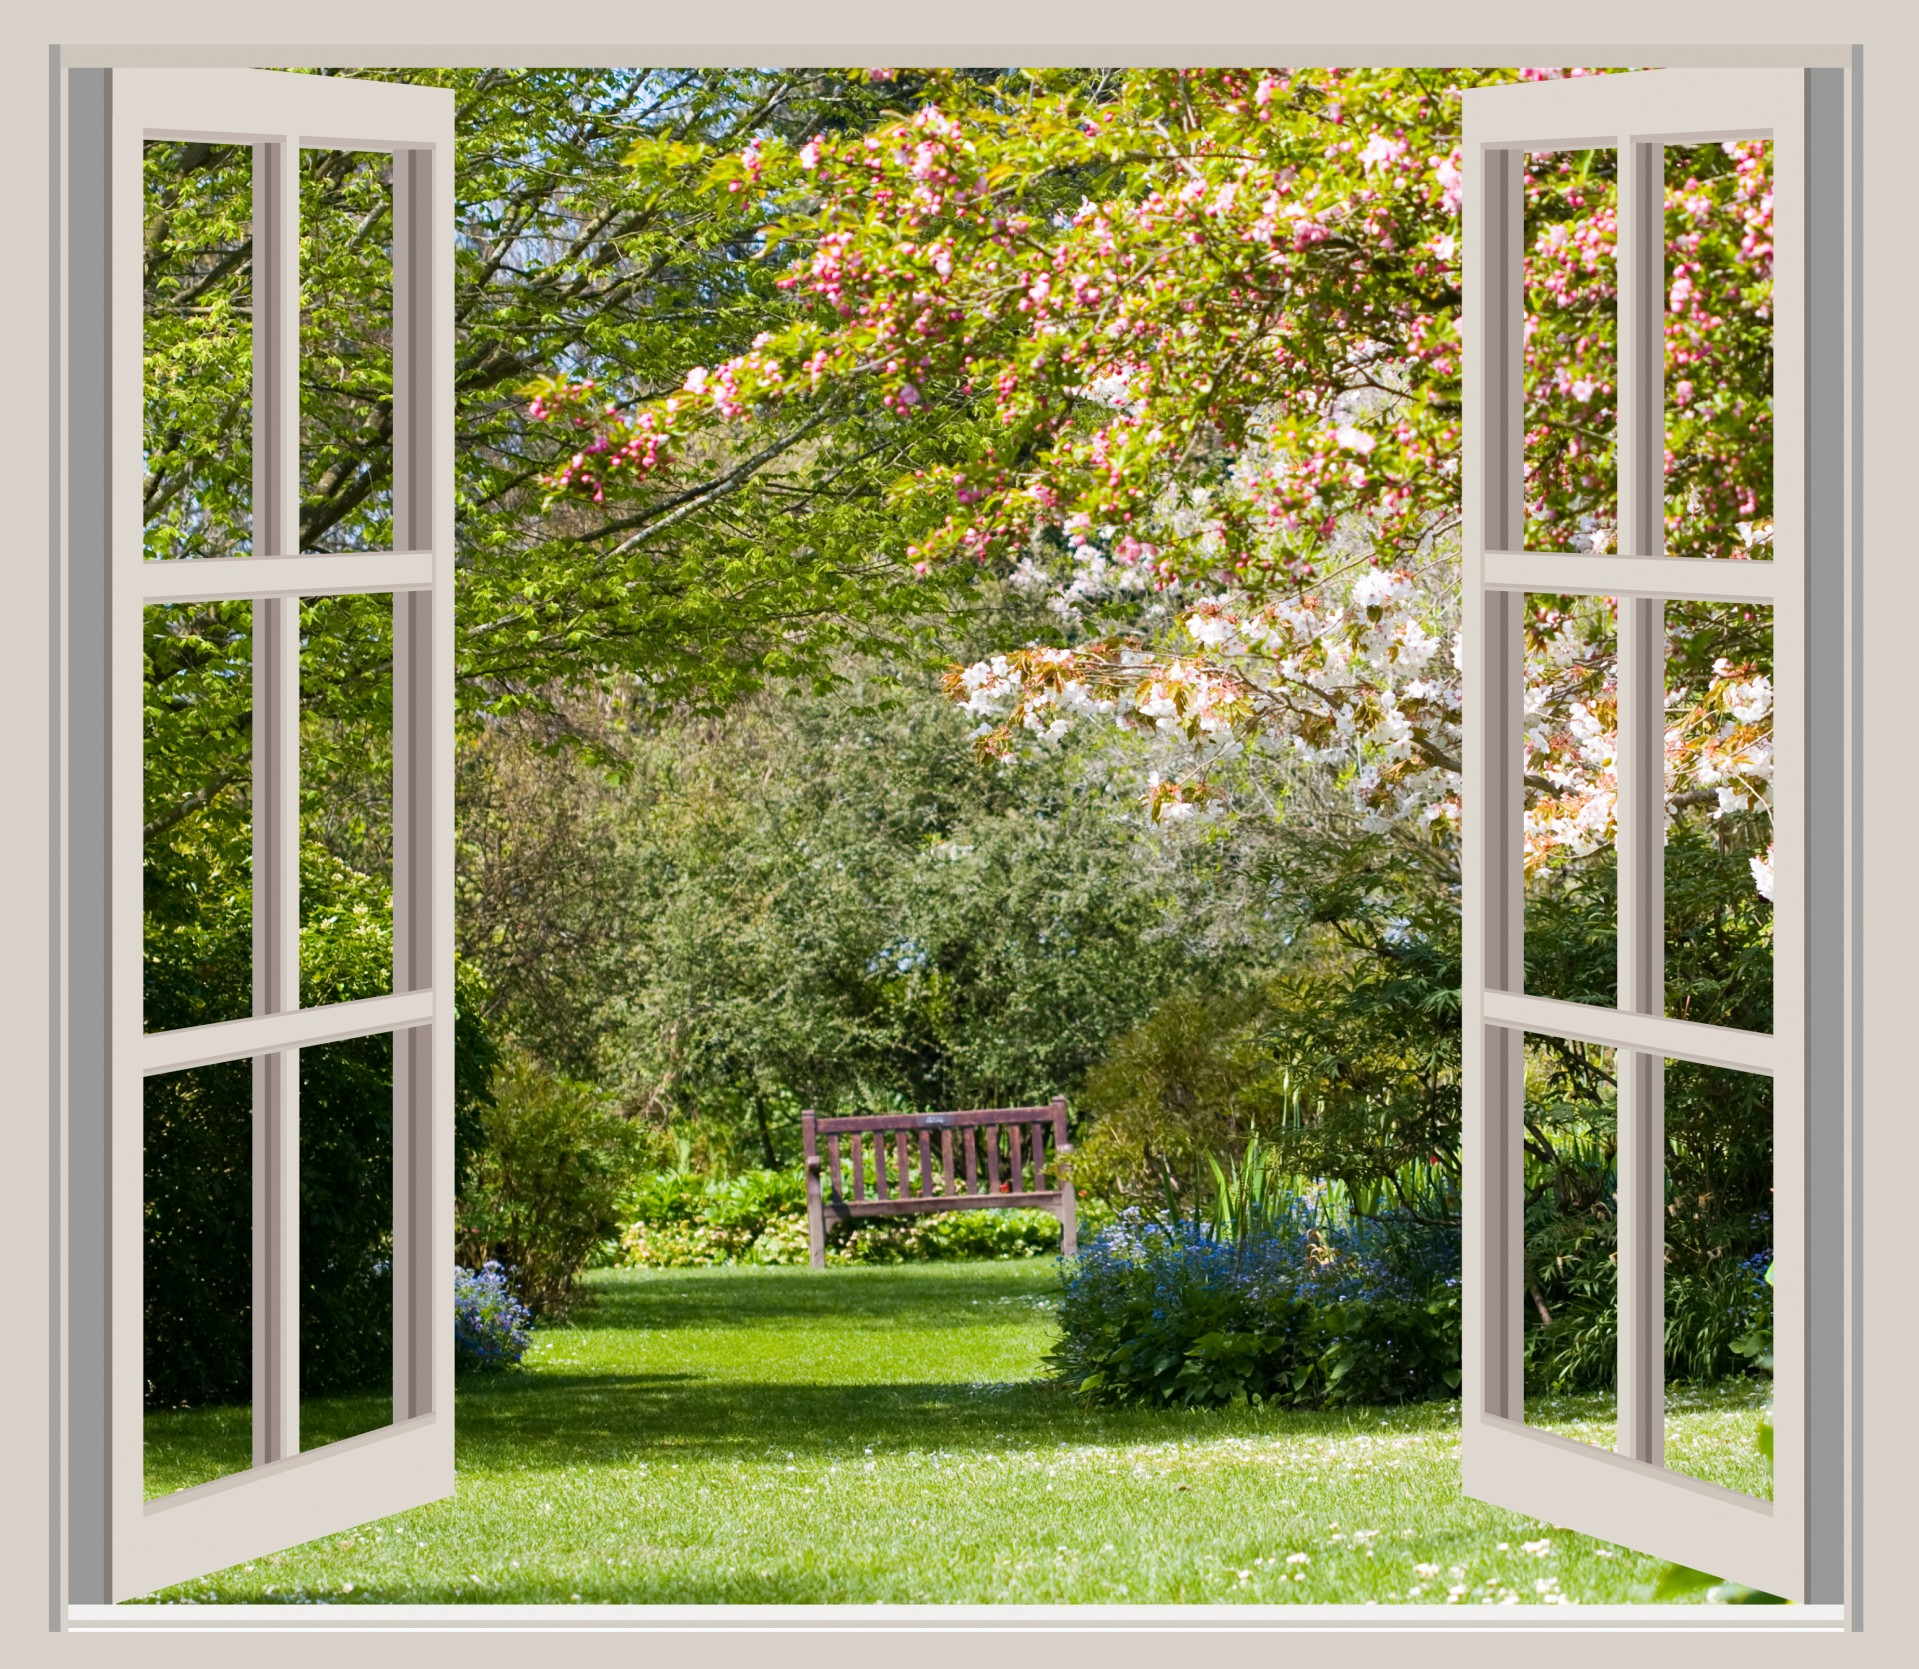 window with garden view